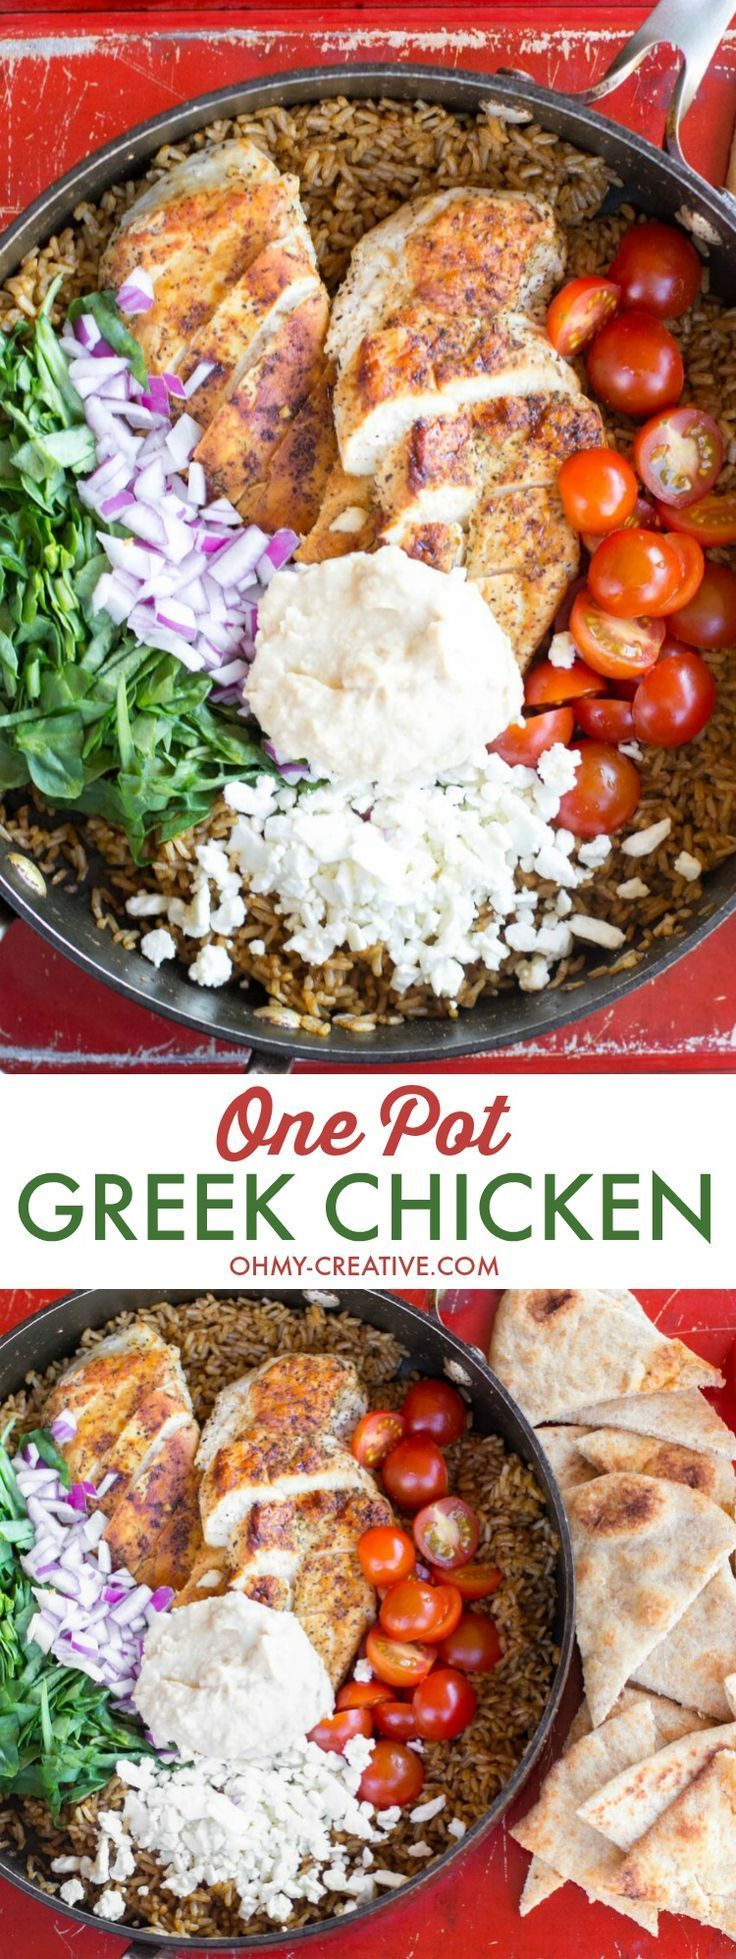 25 best one pot meals ideas on pinterest turkey meat recipes easy hamburger meat recipes and - Healthy greek recipes for dinner mediterranean savour ...